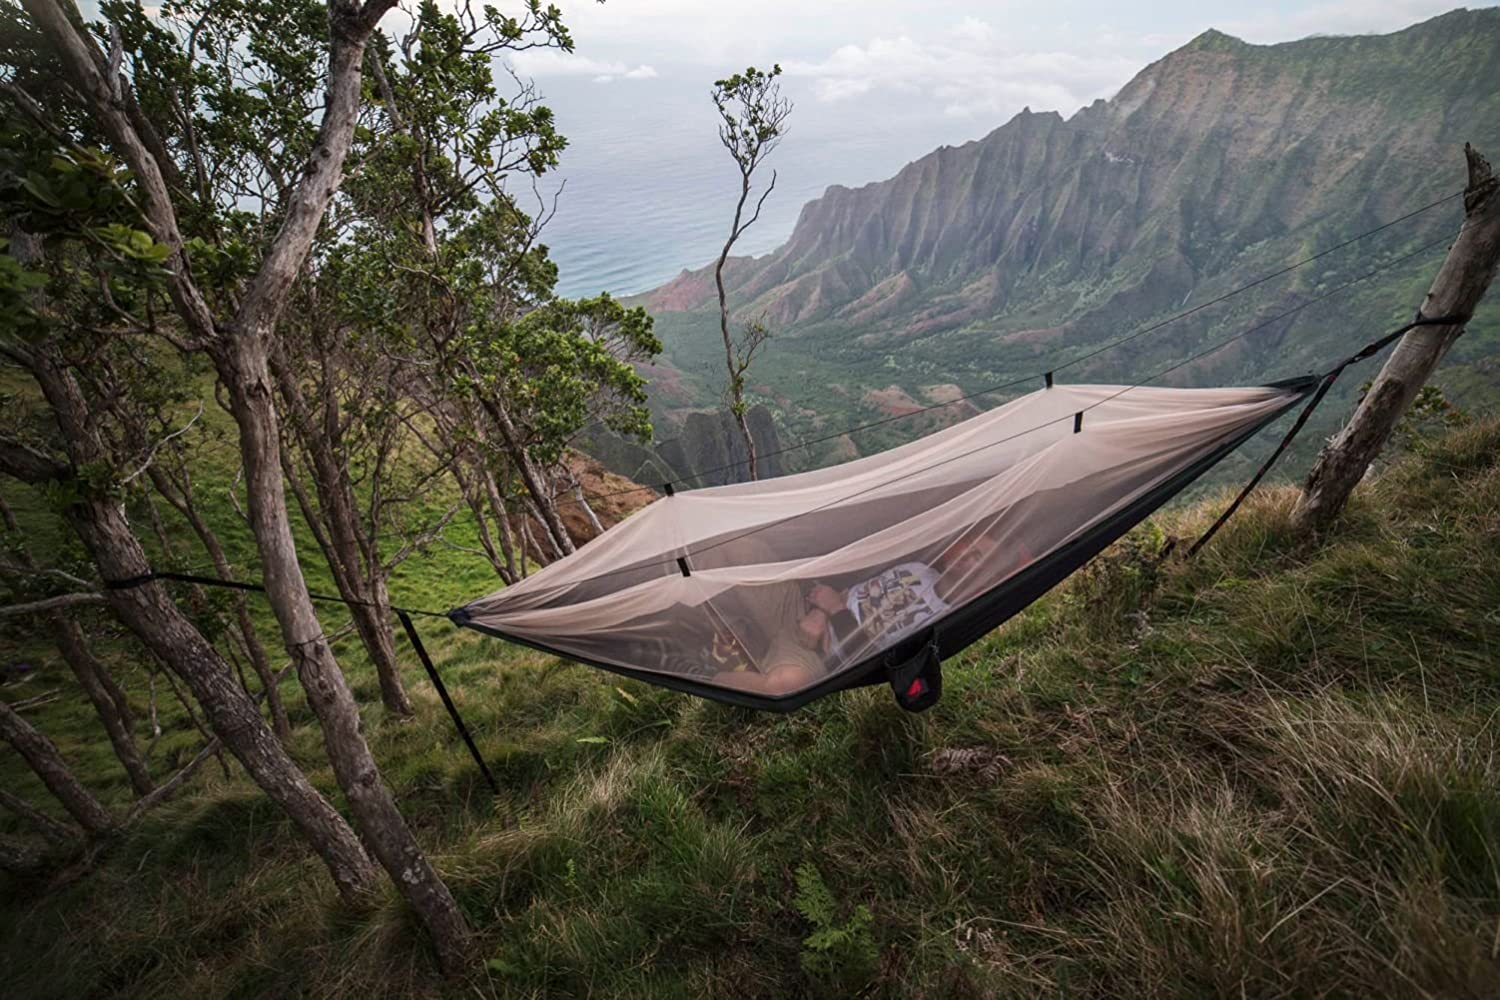 Best Anti-bug hammock